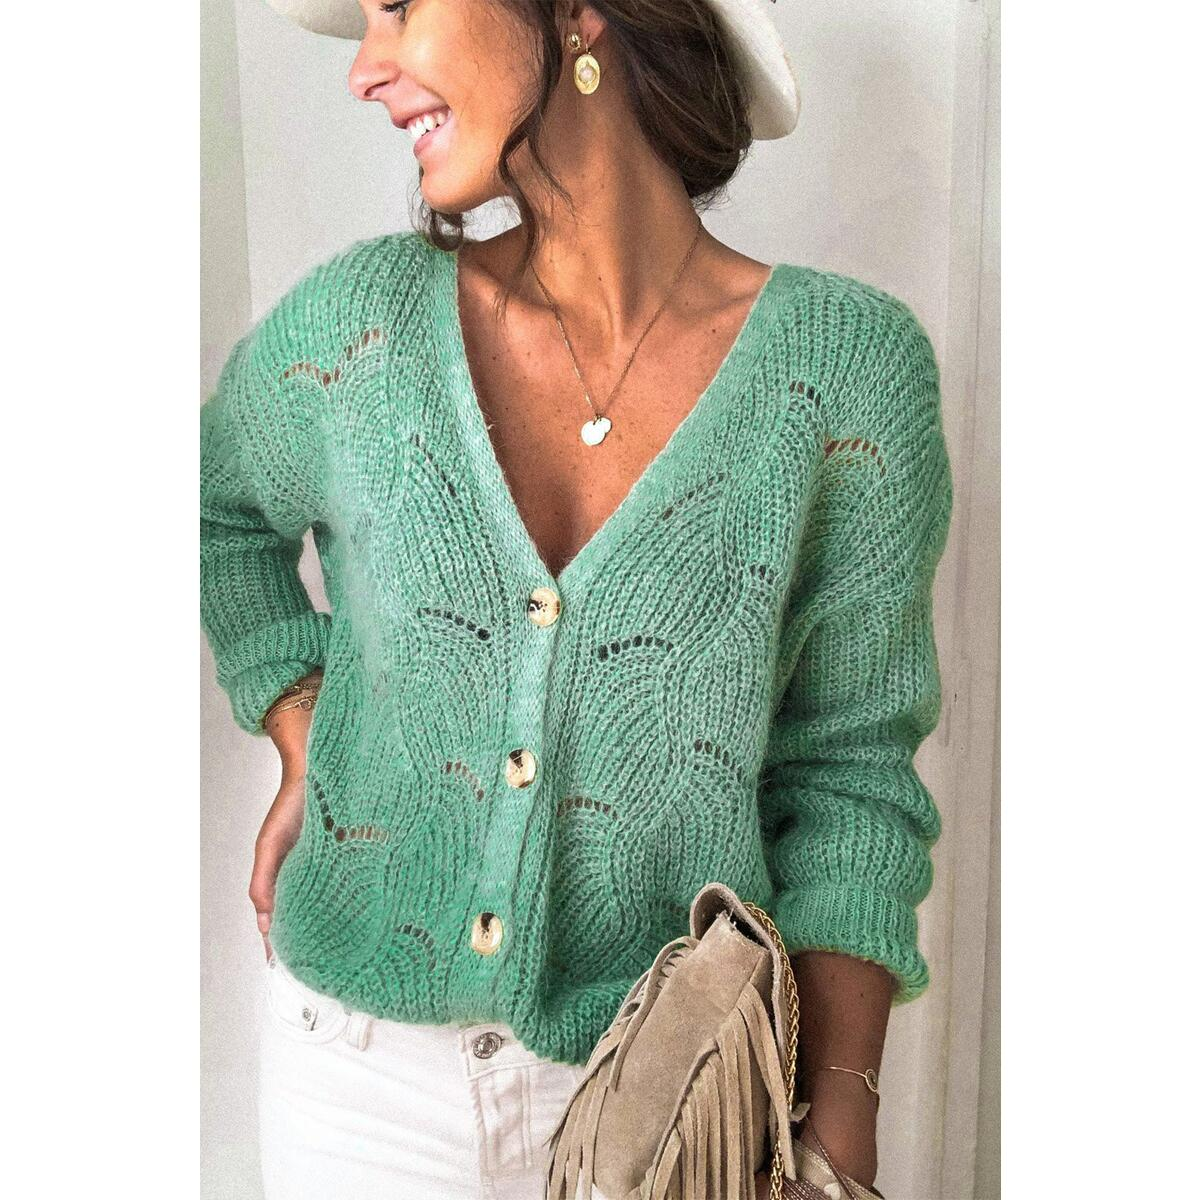 Button Up V-Neck Women's Sweater | Maybelle, Green / 2XL